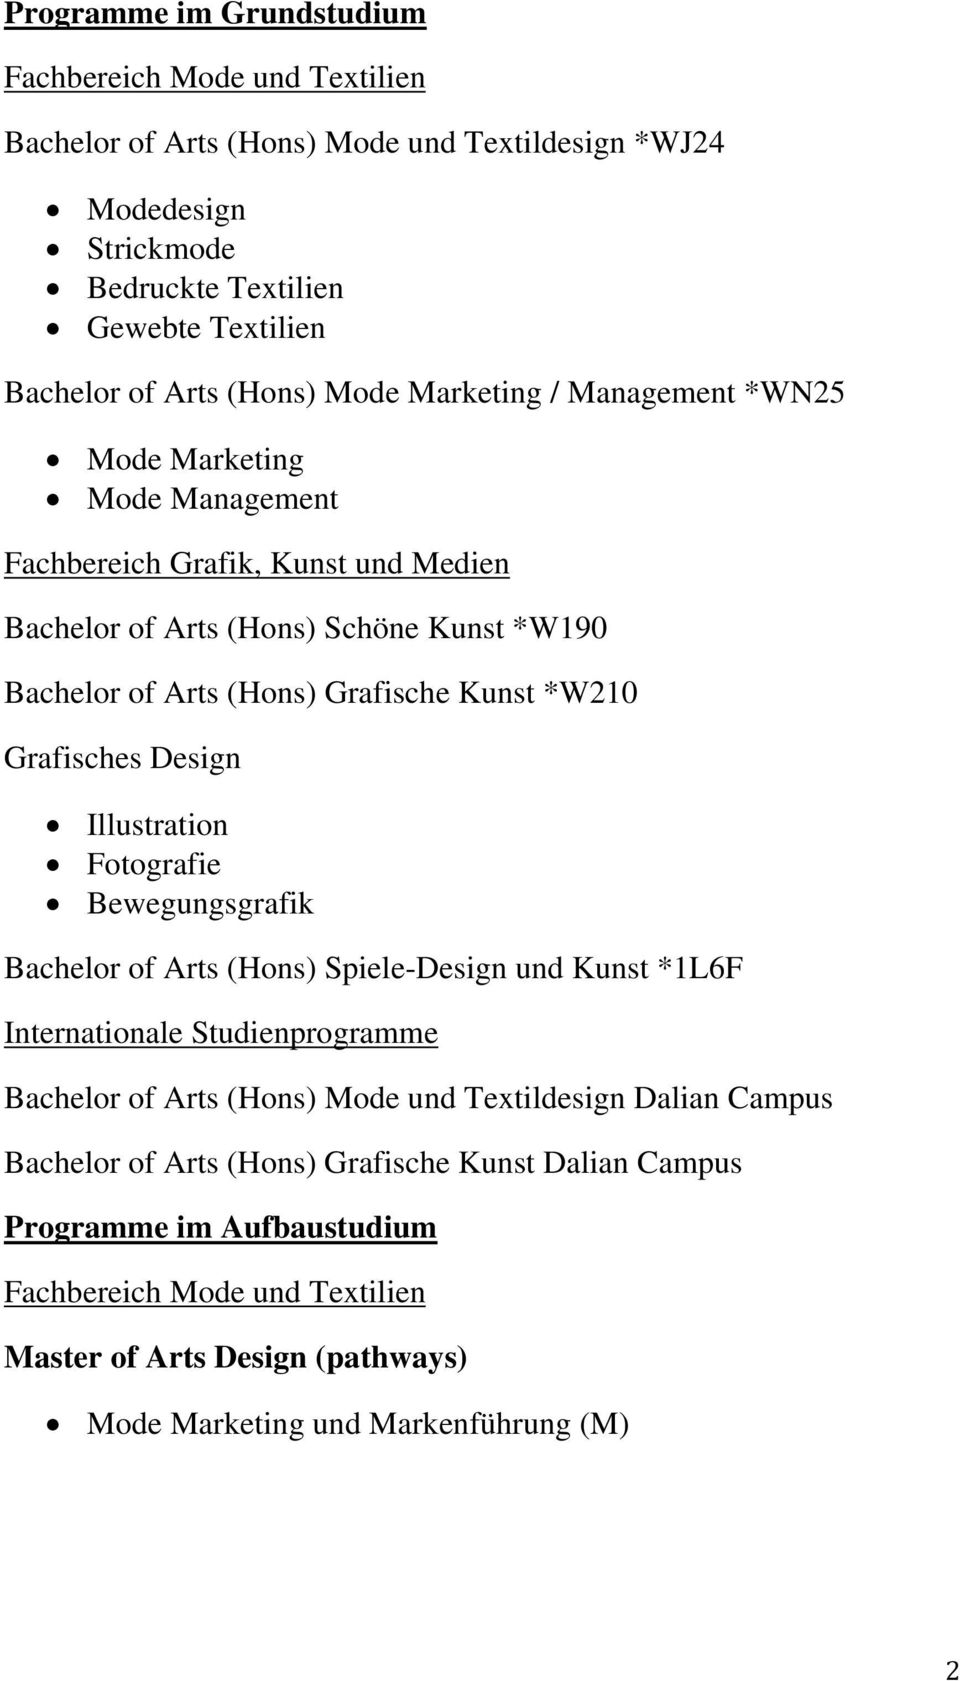 Grafisches Design Illustration Fotografie Bewegungsgrafik Bachelor of Arts (Hons) Spiele-Design und Kunst *1L6F Internationale Studienprogramme Bachelor of Arts (Hons) Mode und Textildesign